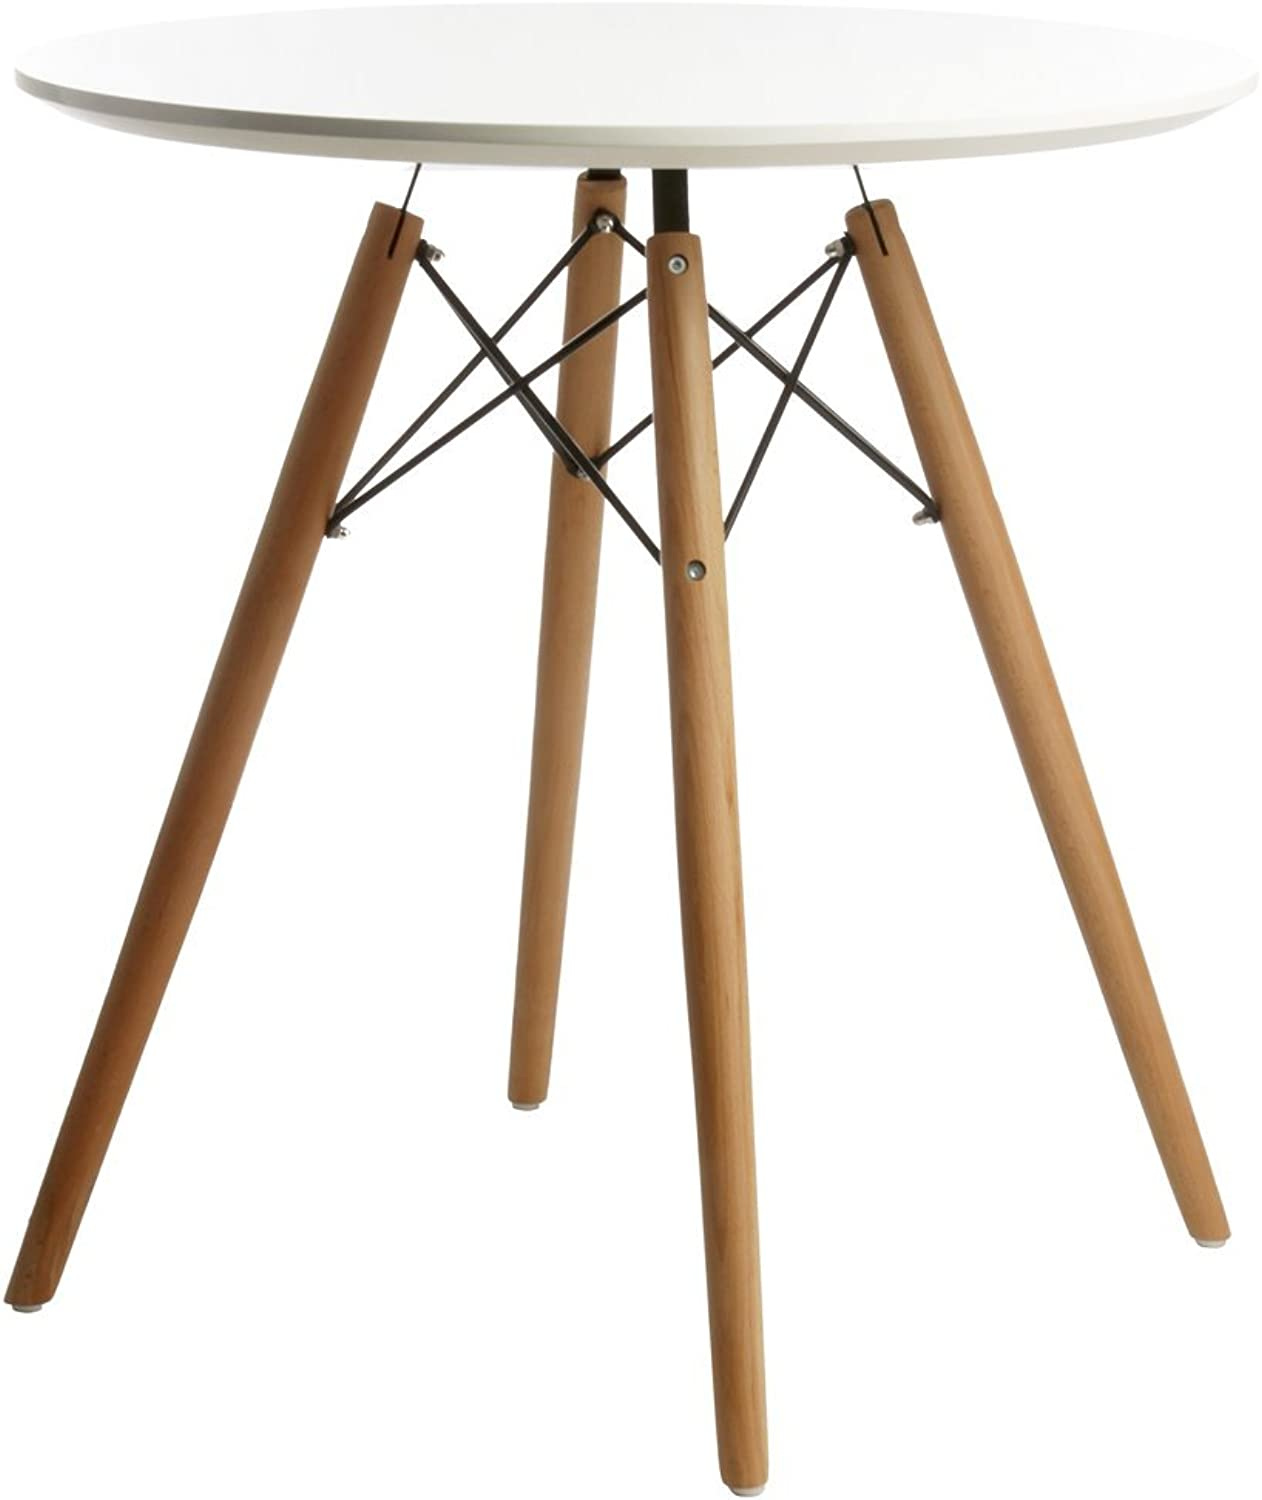 Replica Eames DSW Small Dining Table